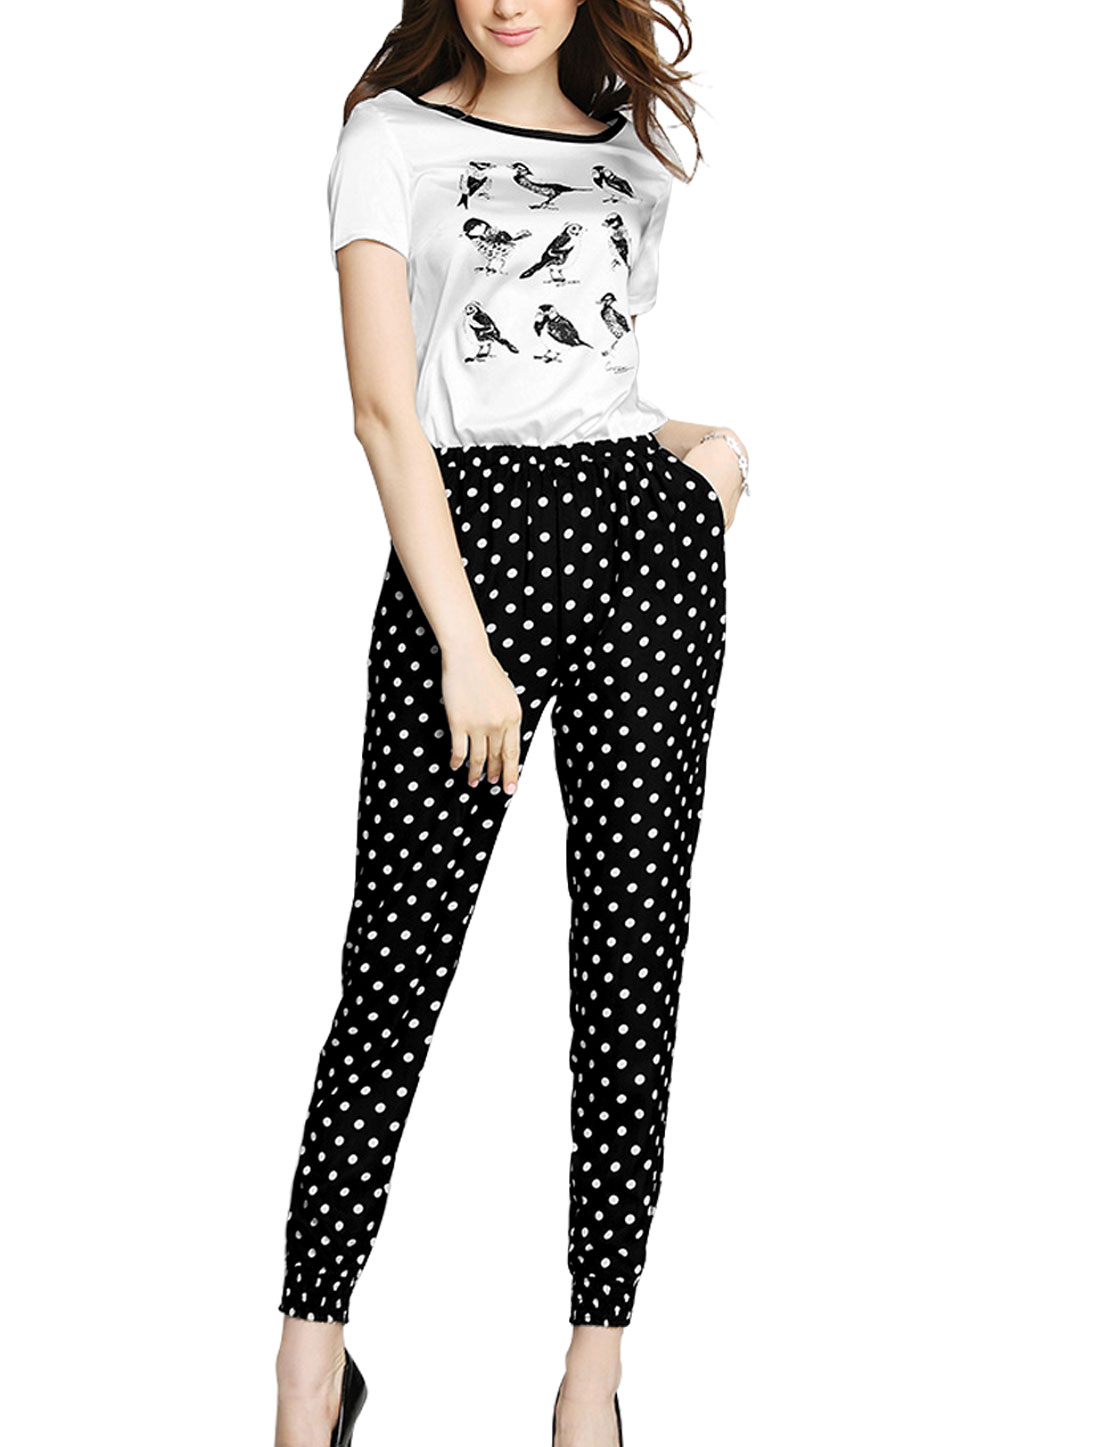 Lady Birds Pattern Elastic Waist Two Slant Pockets Chic Jumpsuit Black White S